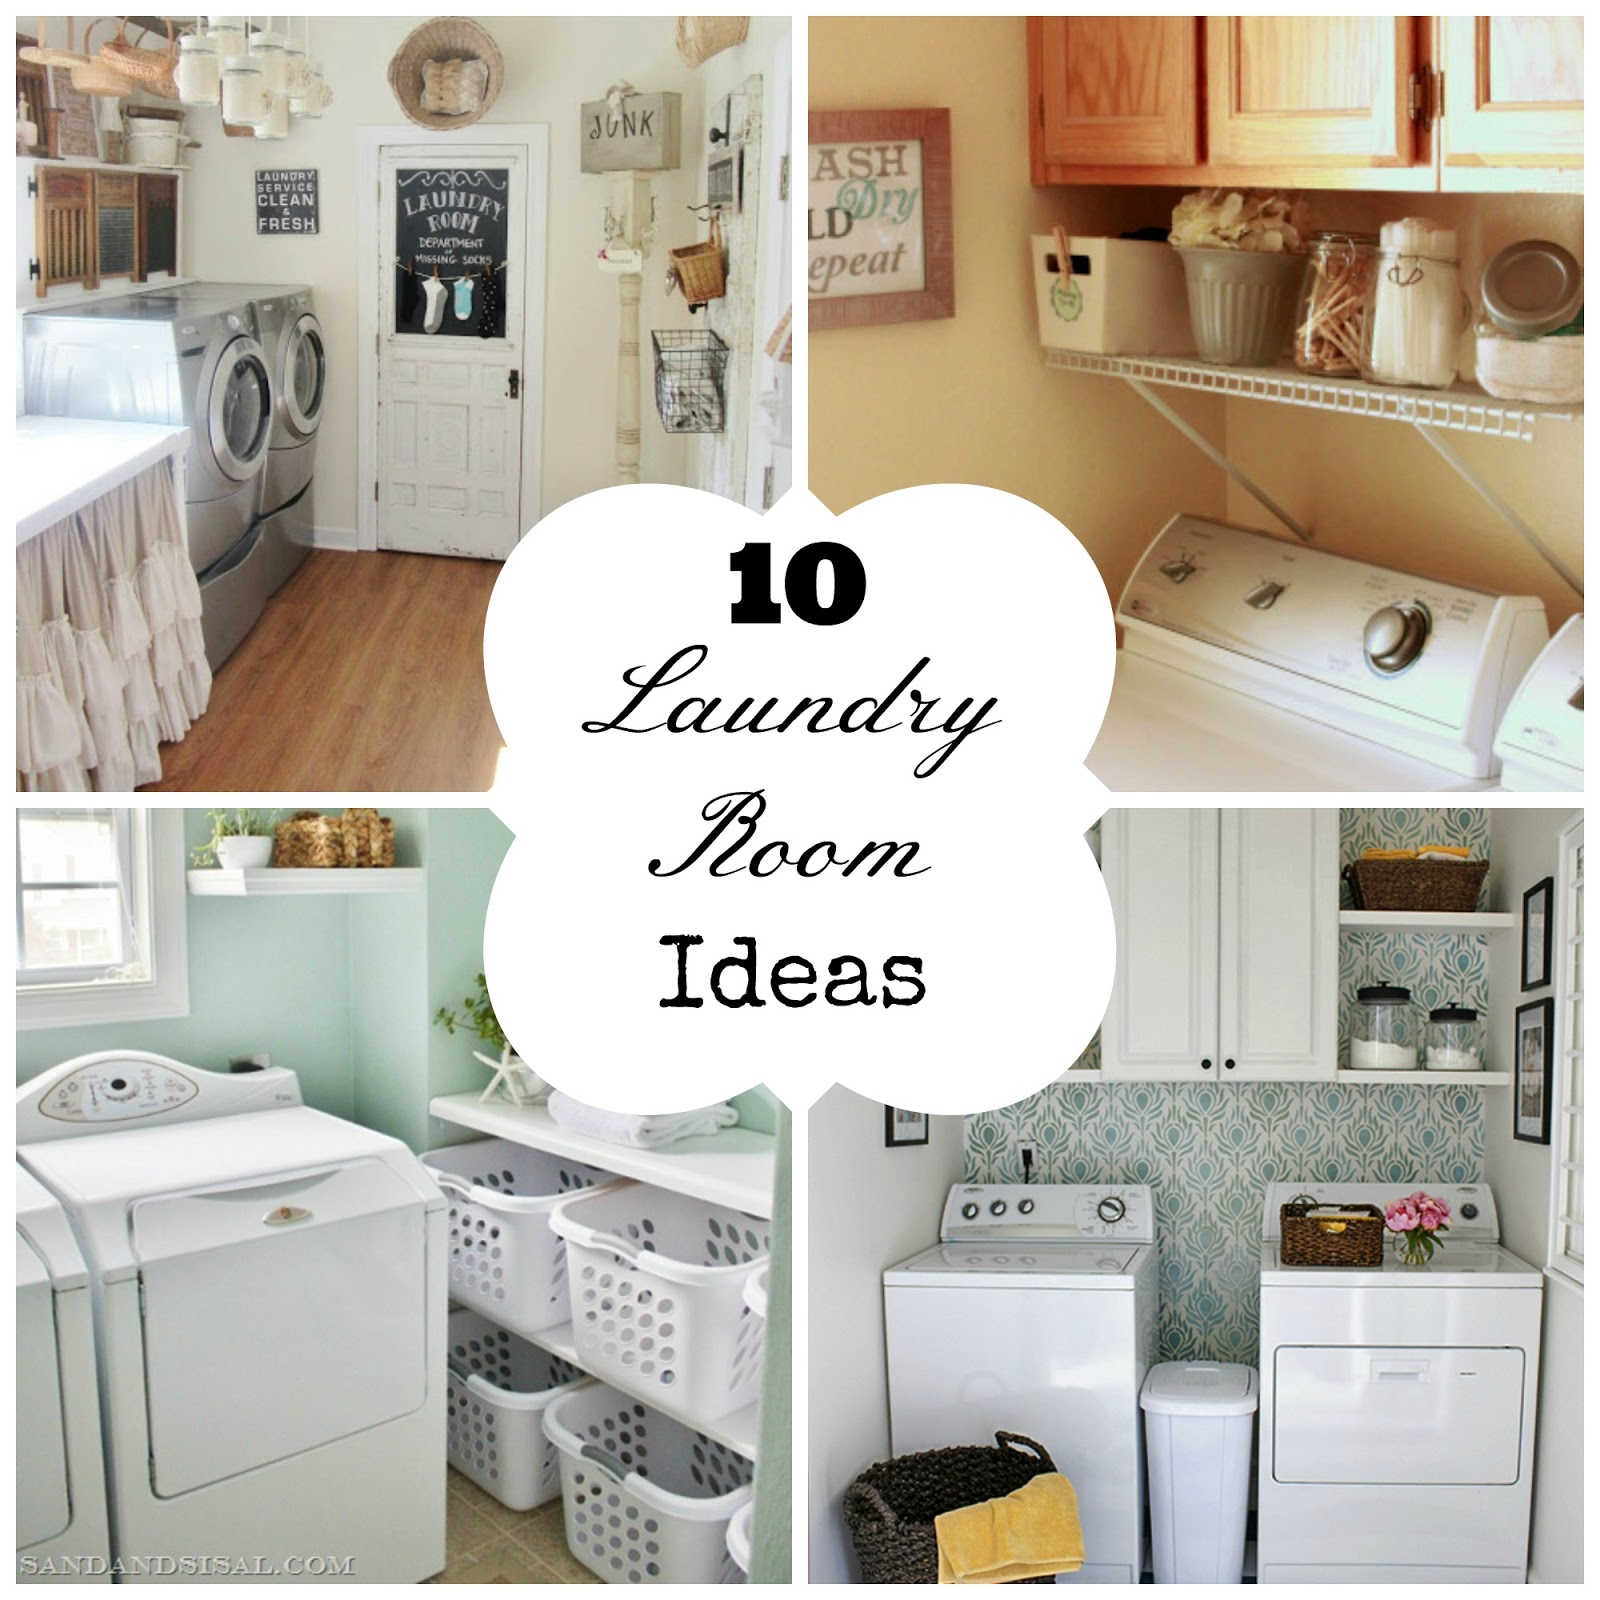 laundry room ideas for you interior decorating las vegas ForDecorate A Laundry Room